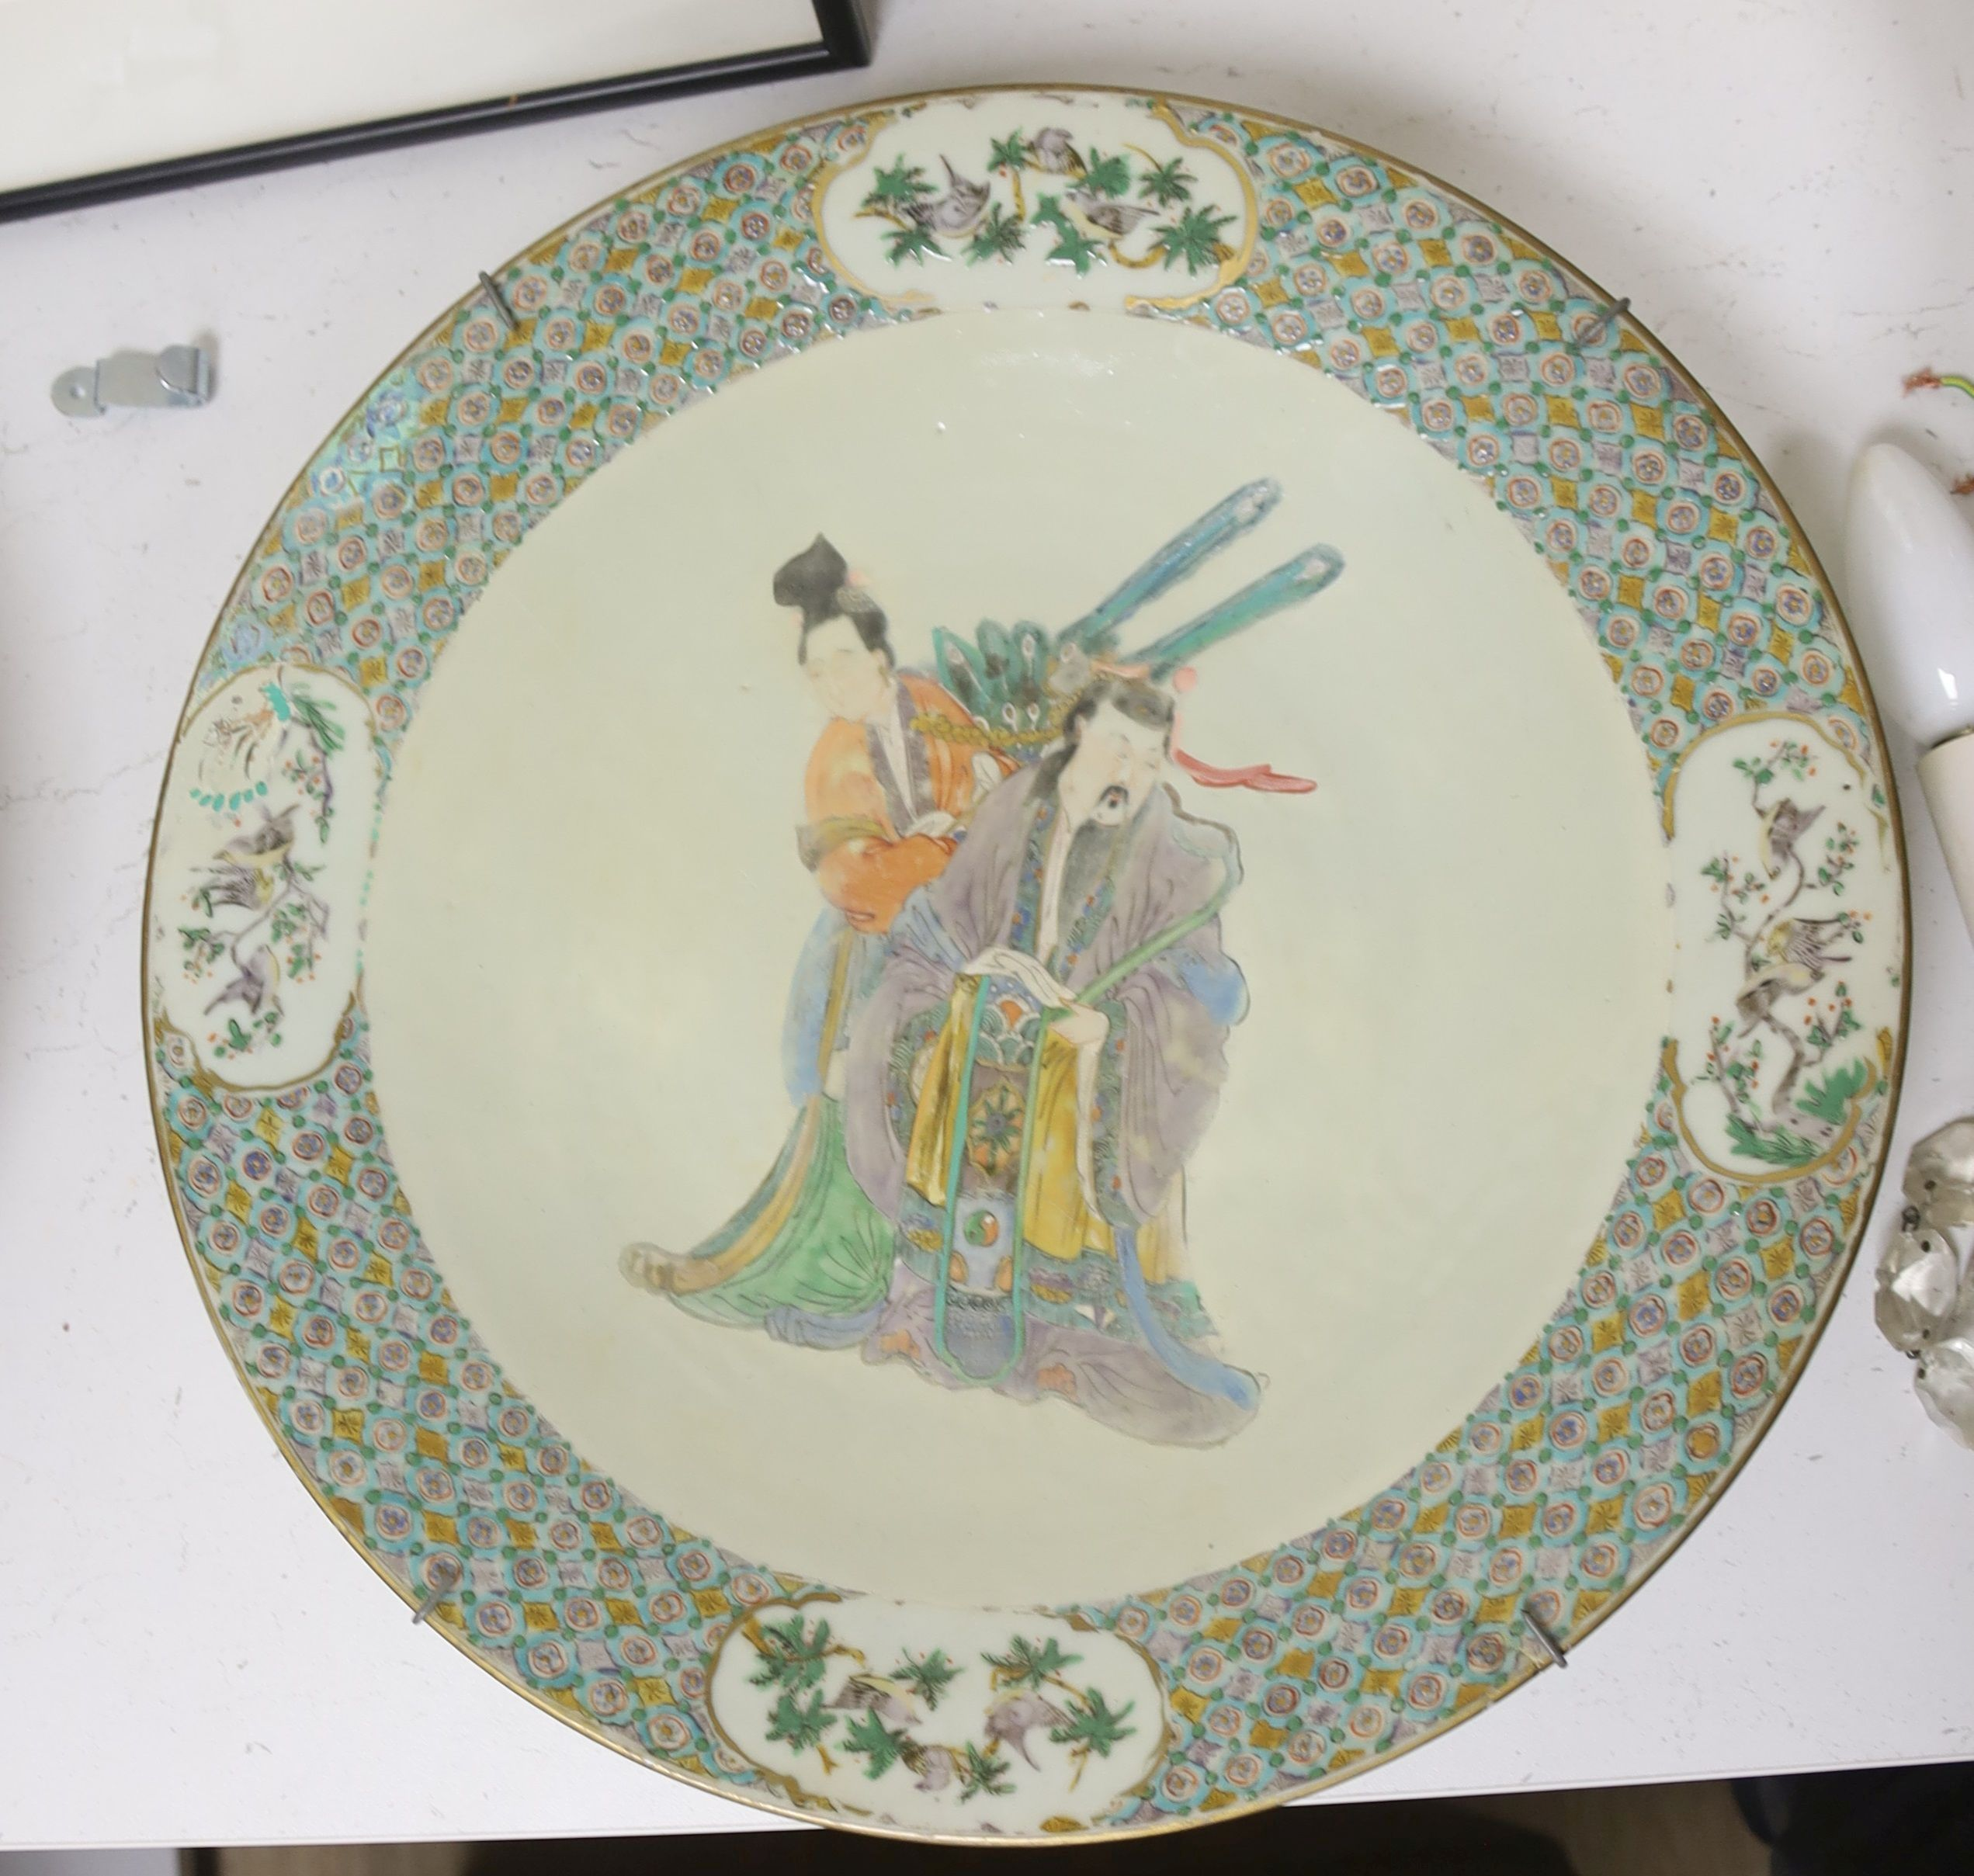 A Chinese enamelled porcelain 'immortals' dish, 19th century, diameter 38cm, restored